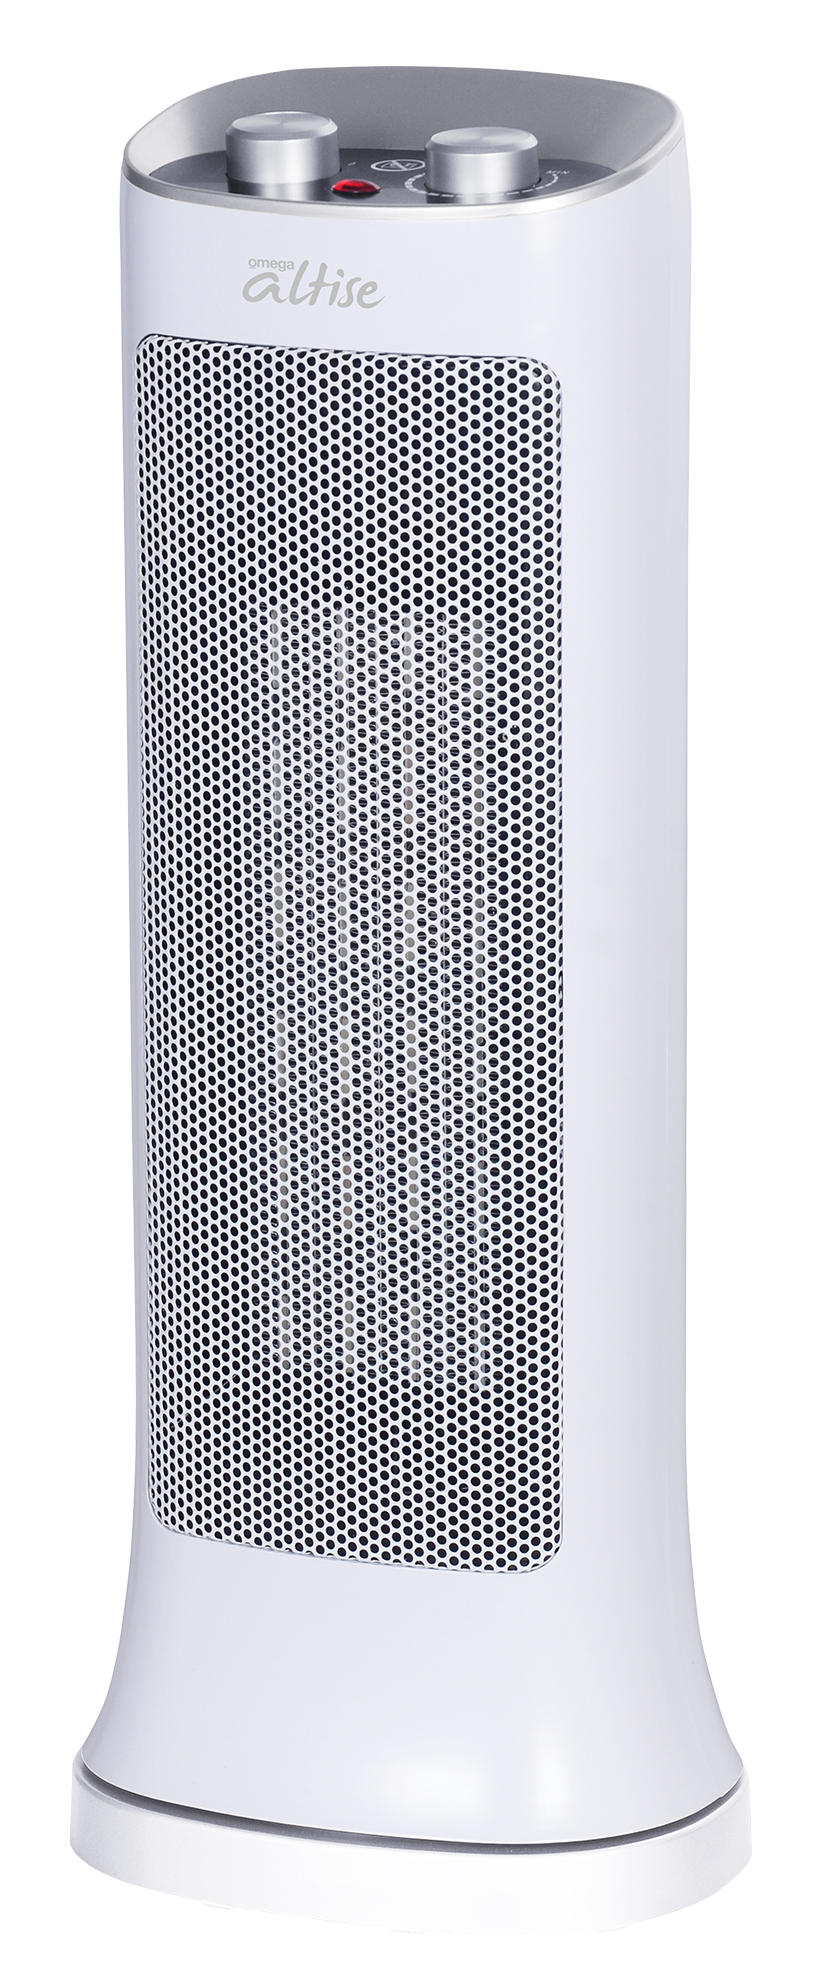 Omega Altise product Ceramic Tower Heater - WhiteOACHT2000